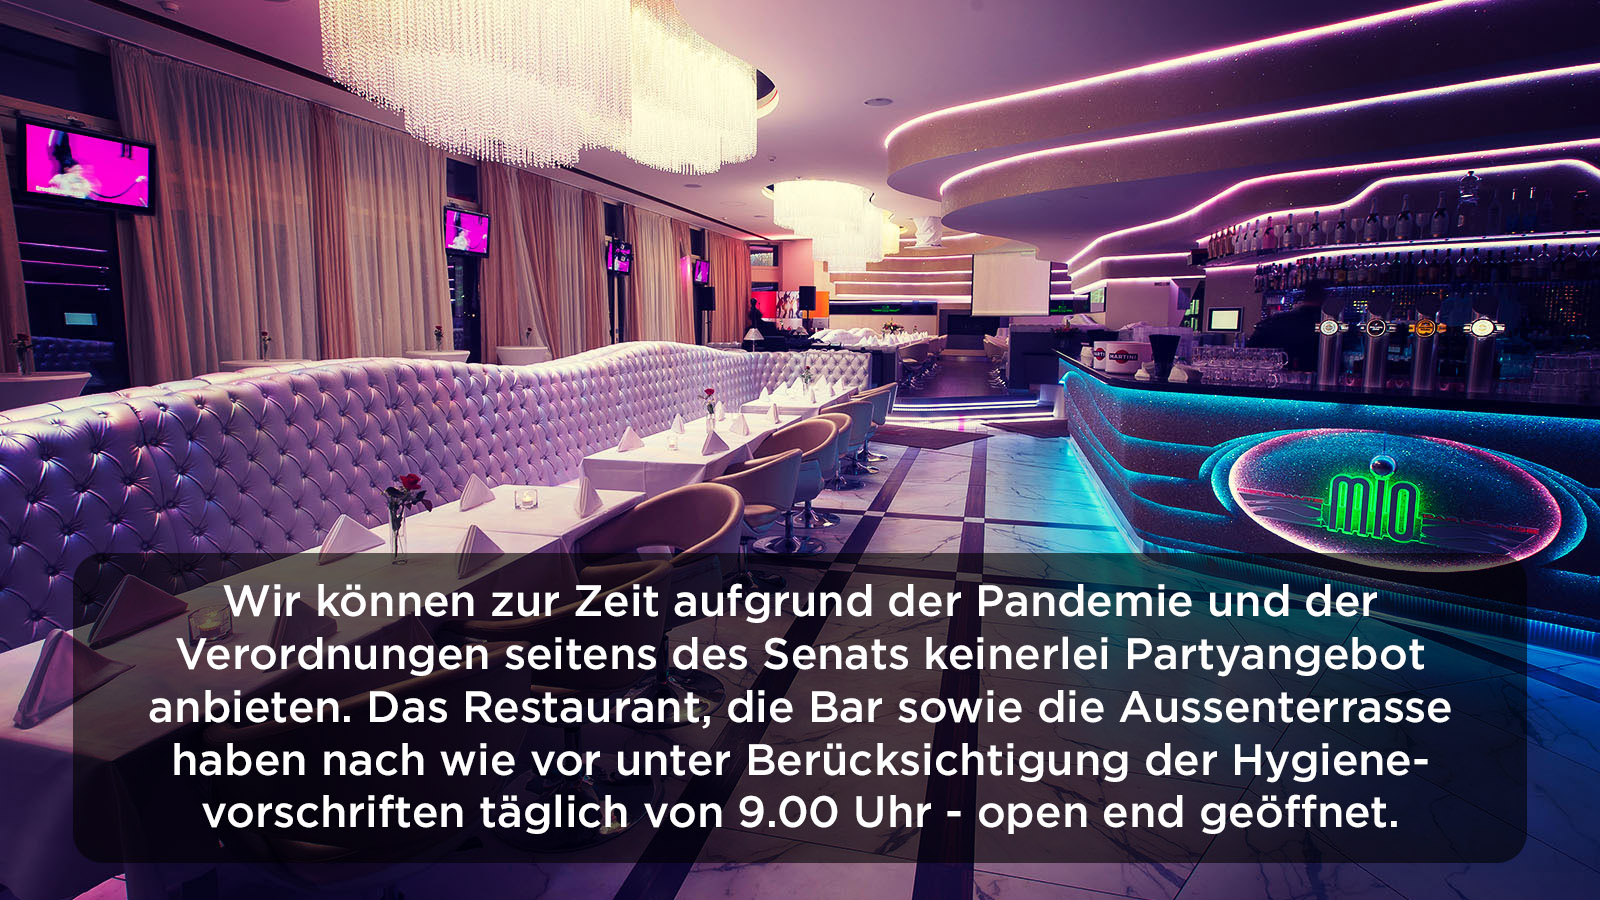 mio-berlin-restaurant-club-eventlocation-alexanderplatz-slider-info